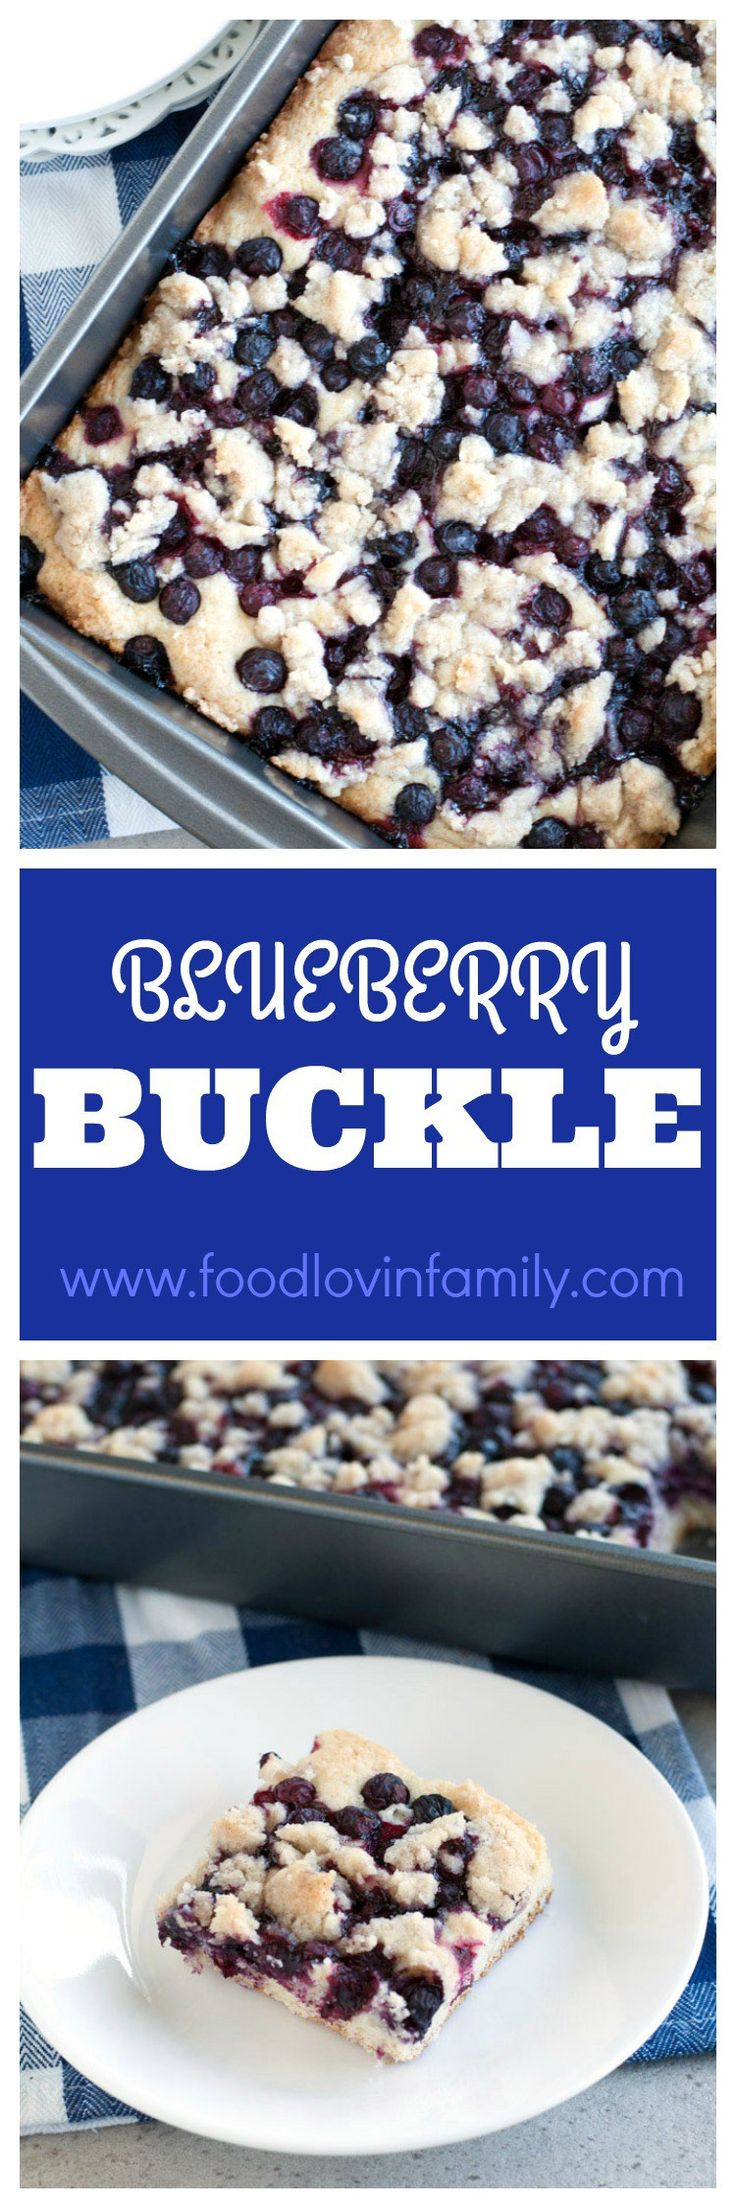 Blueberry buckle, cake topped with blueberries and cinnamon sugar streusel. Perfect for brunch, breakfast or dessert. A family favorite!